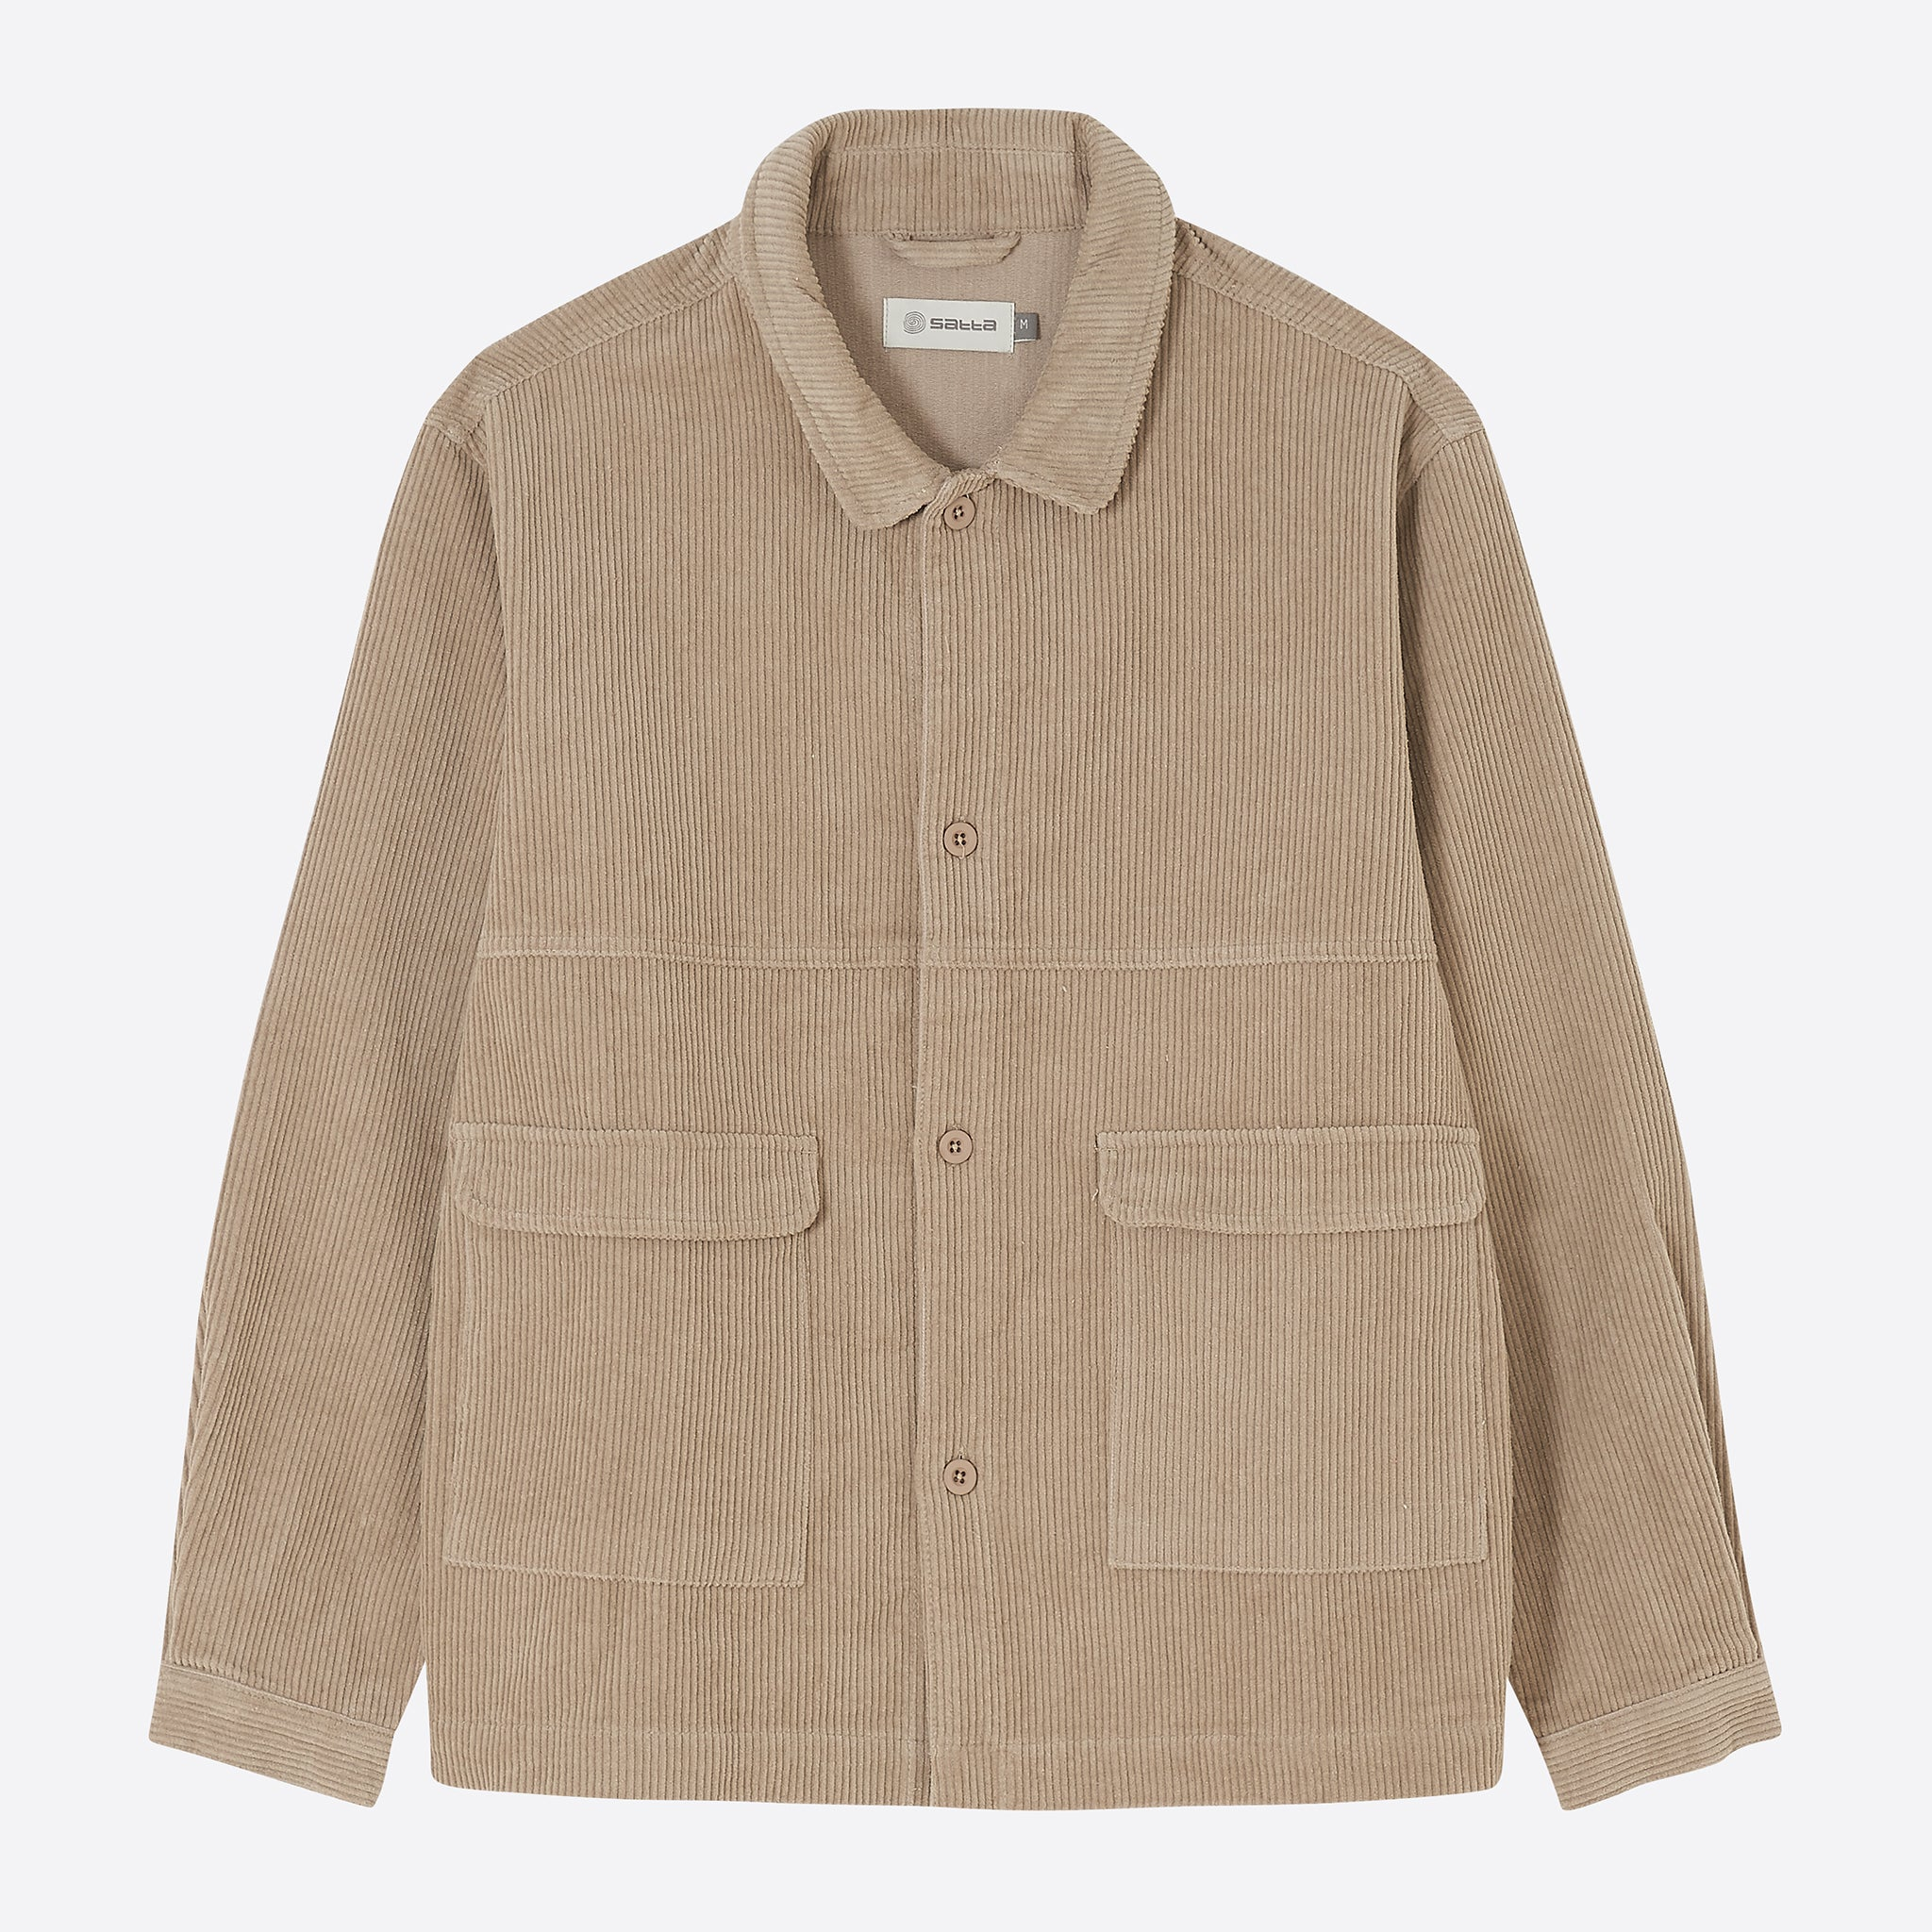 Satta Buku Jacket in Taupe